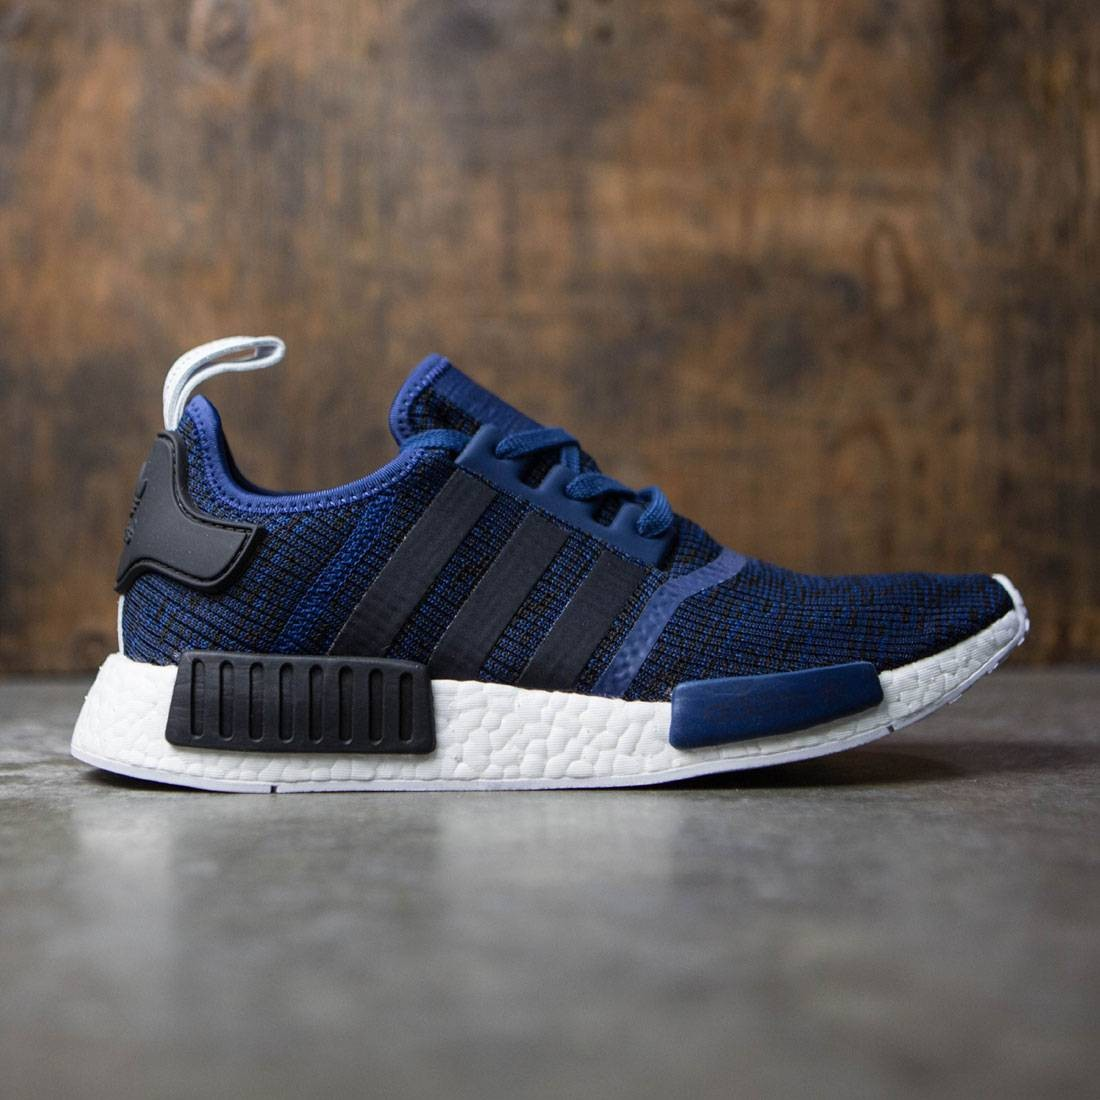 4d6d8657e3838 Adidas Men NMD R1 blue mystery blue core black collegiate navy